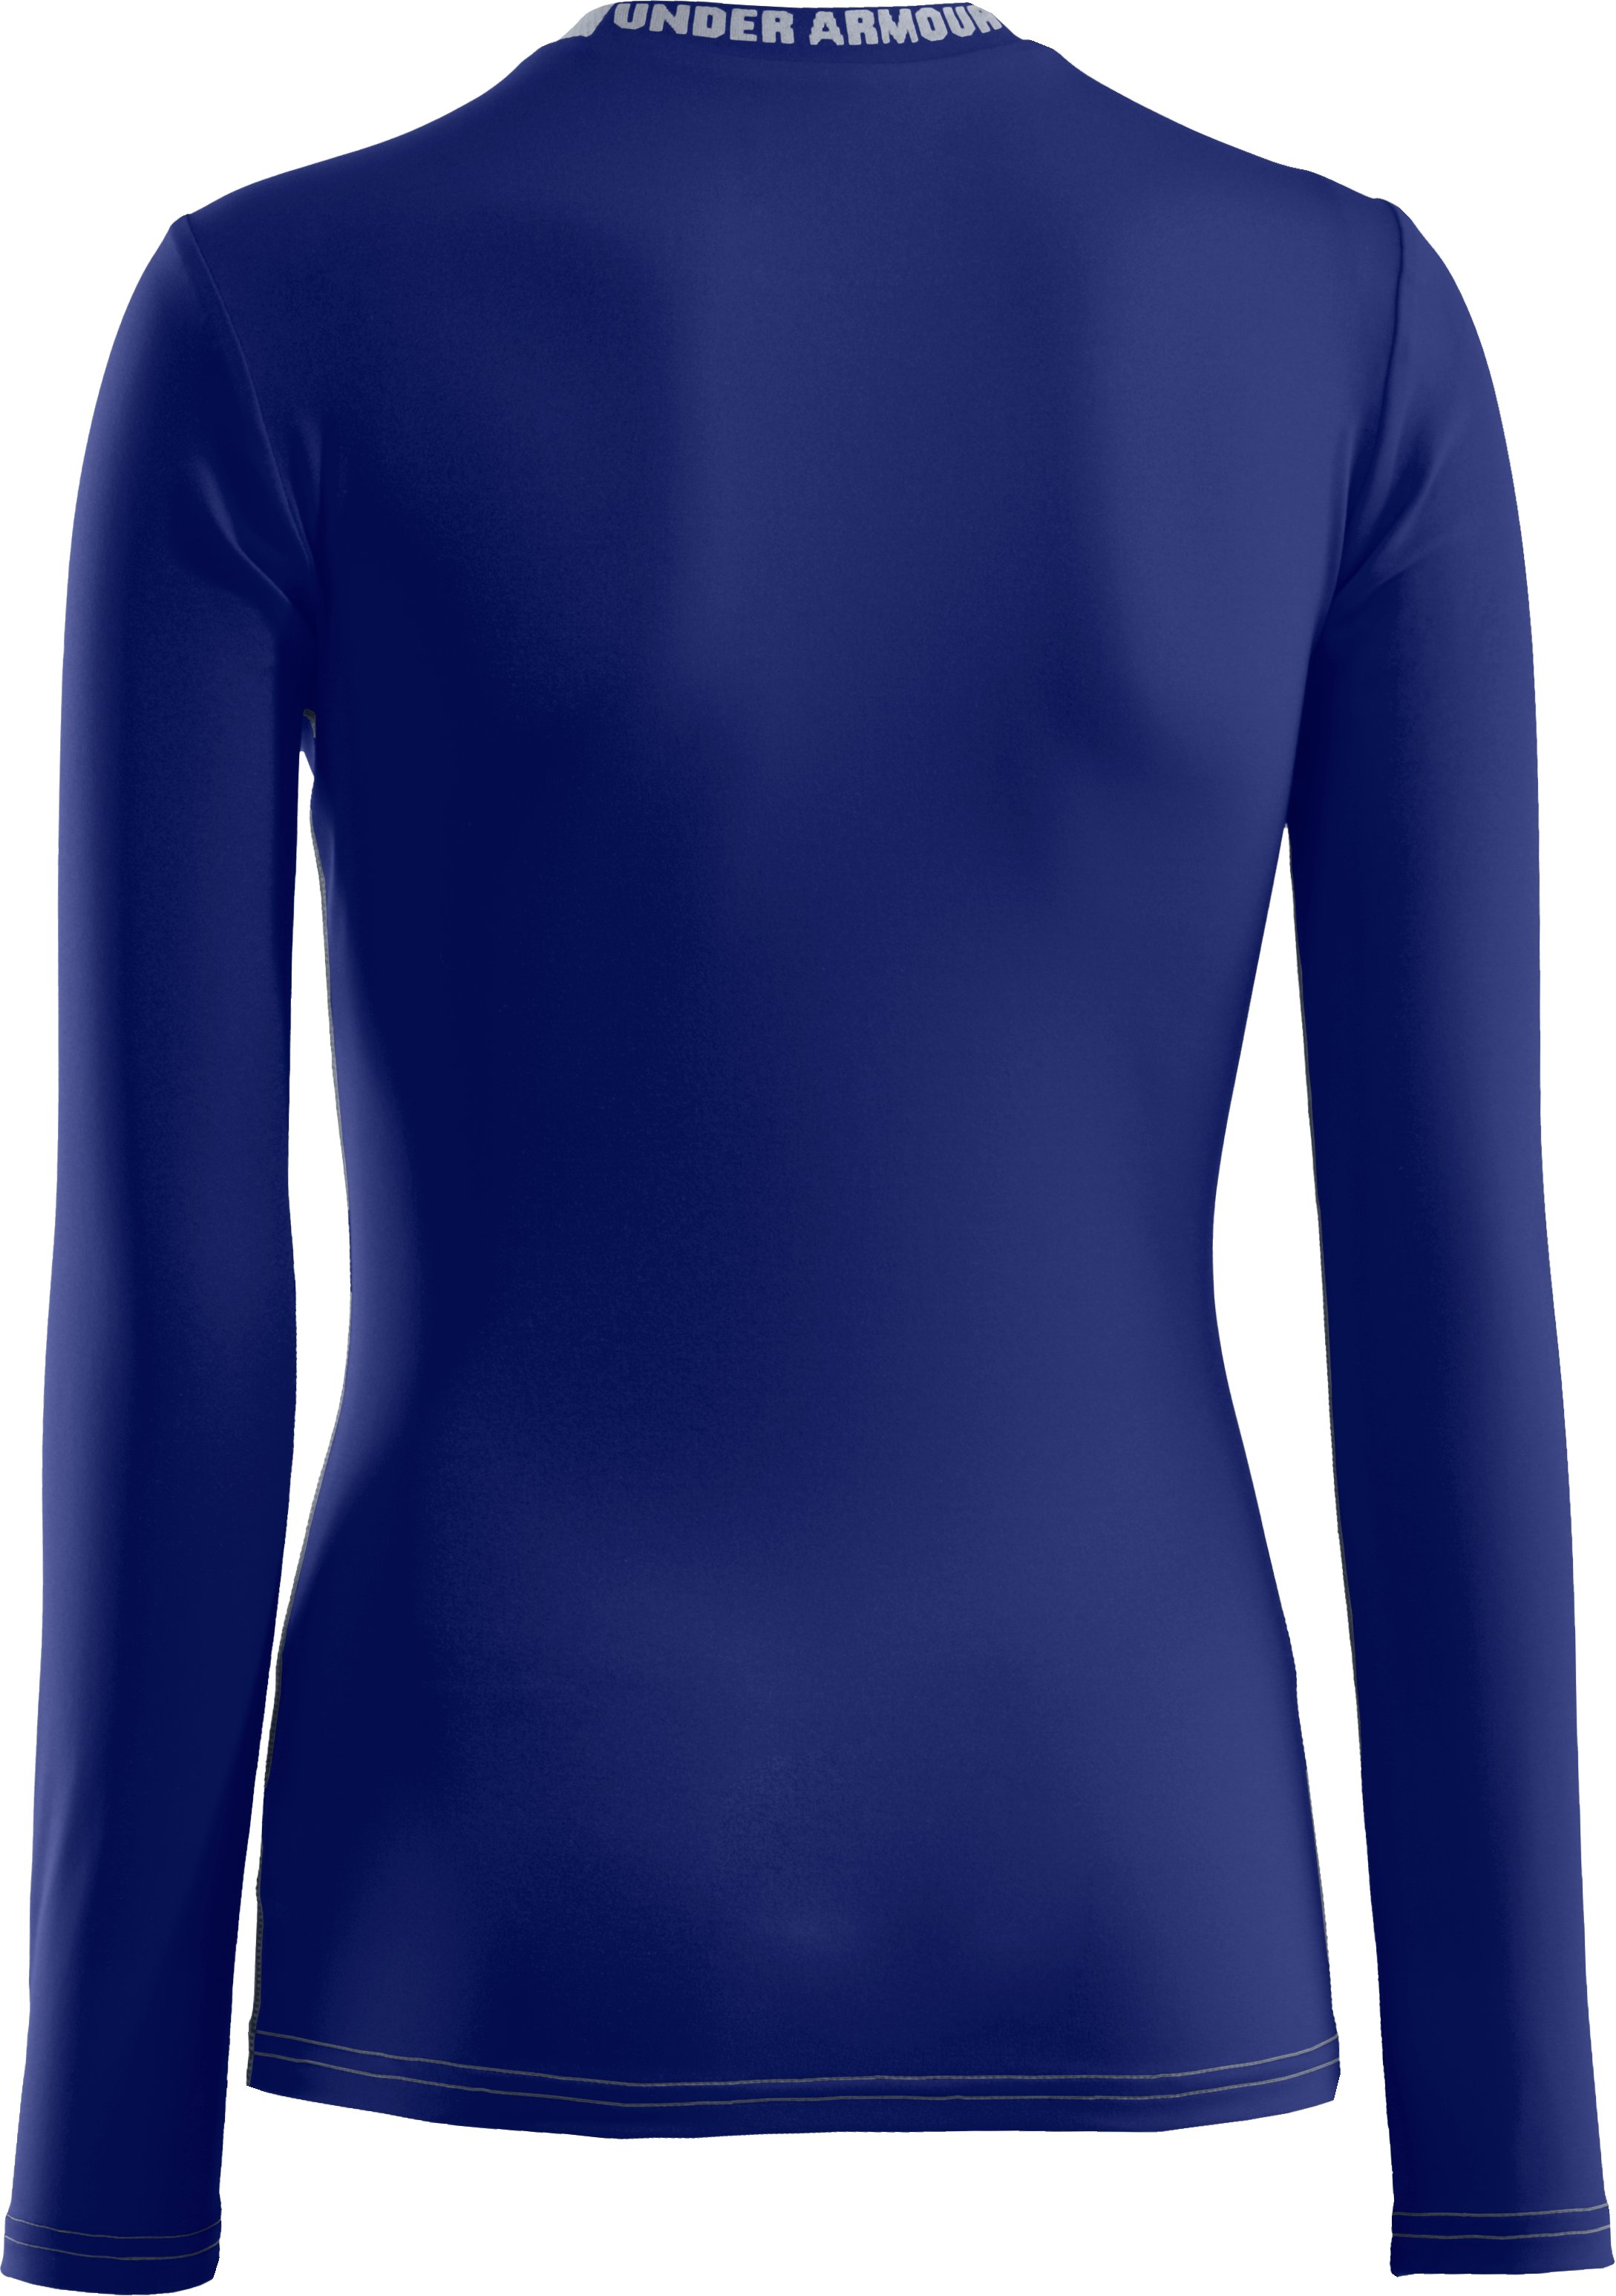 Boys' HeatGear® Sonic Fitted Long Sleeve, Royal, undefined